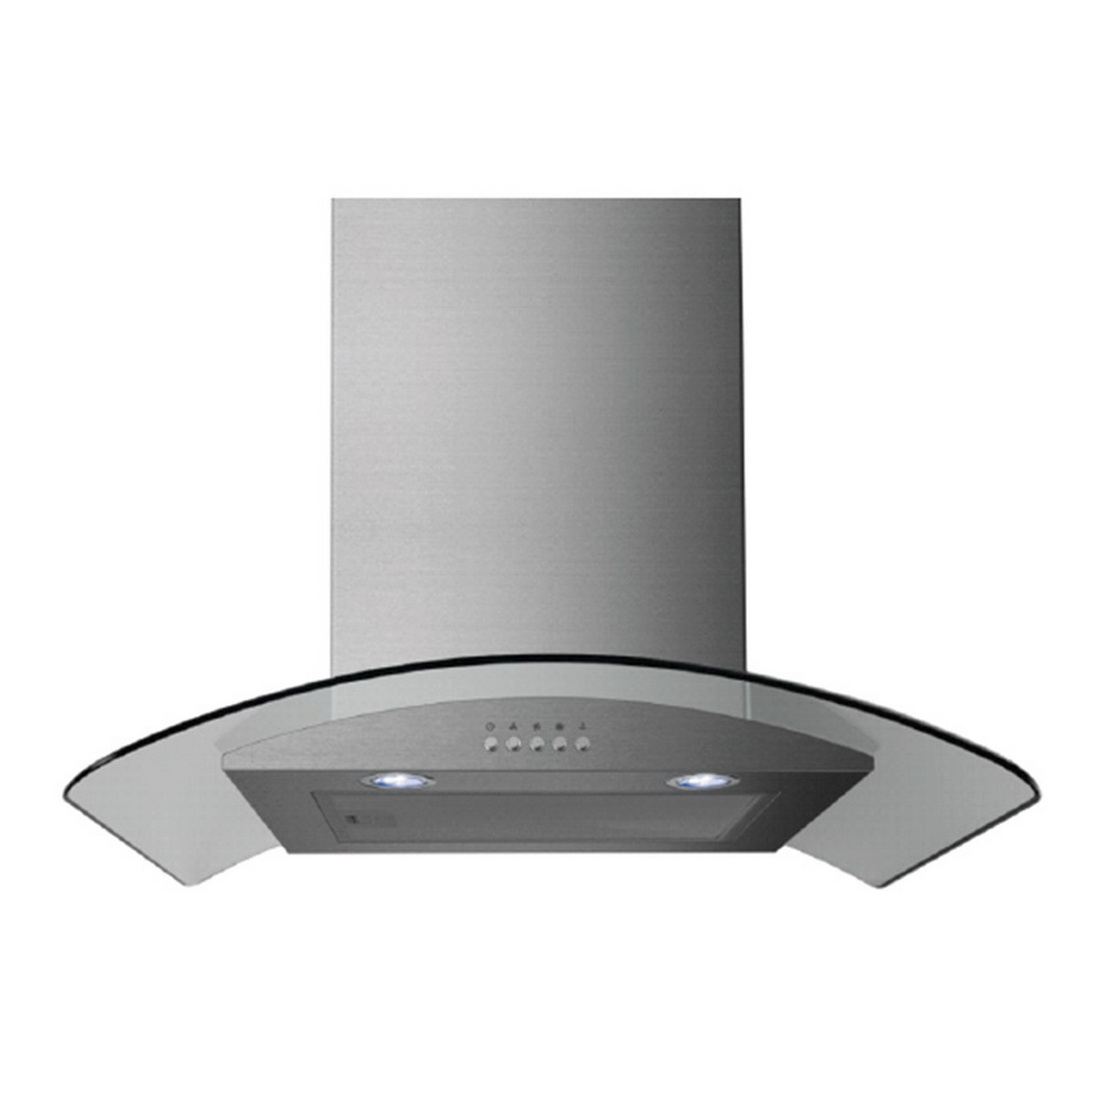 Curved Glass Range Hood 60cm 800 cu-m/hr Stainless Steel E60MEW2V71